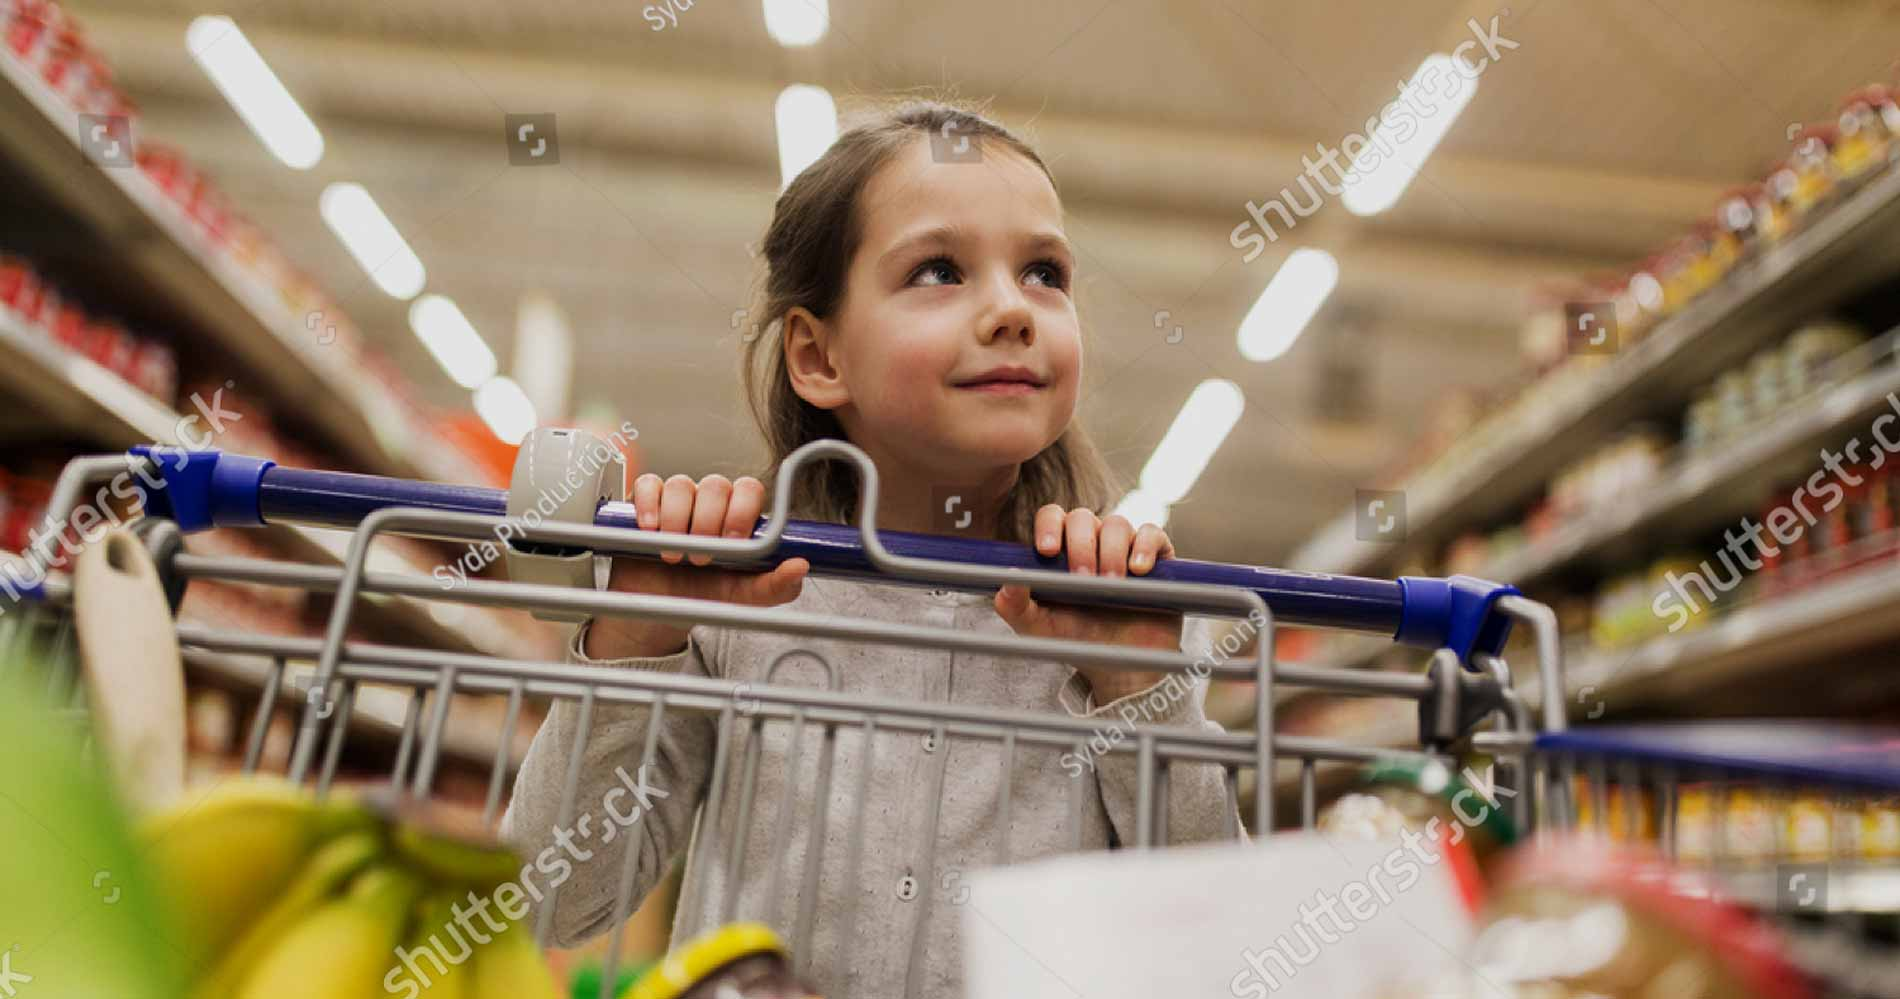 sale-consumerism-and-people-concept-happy-little-girl-with-food-in-shopping-cart-at-grocery-store